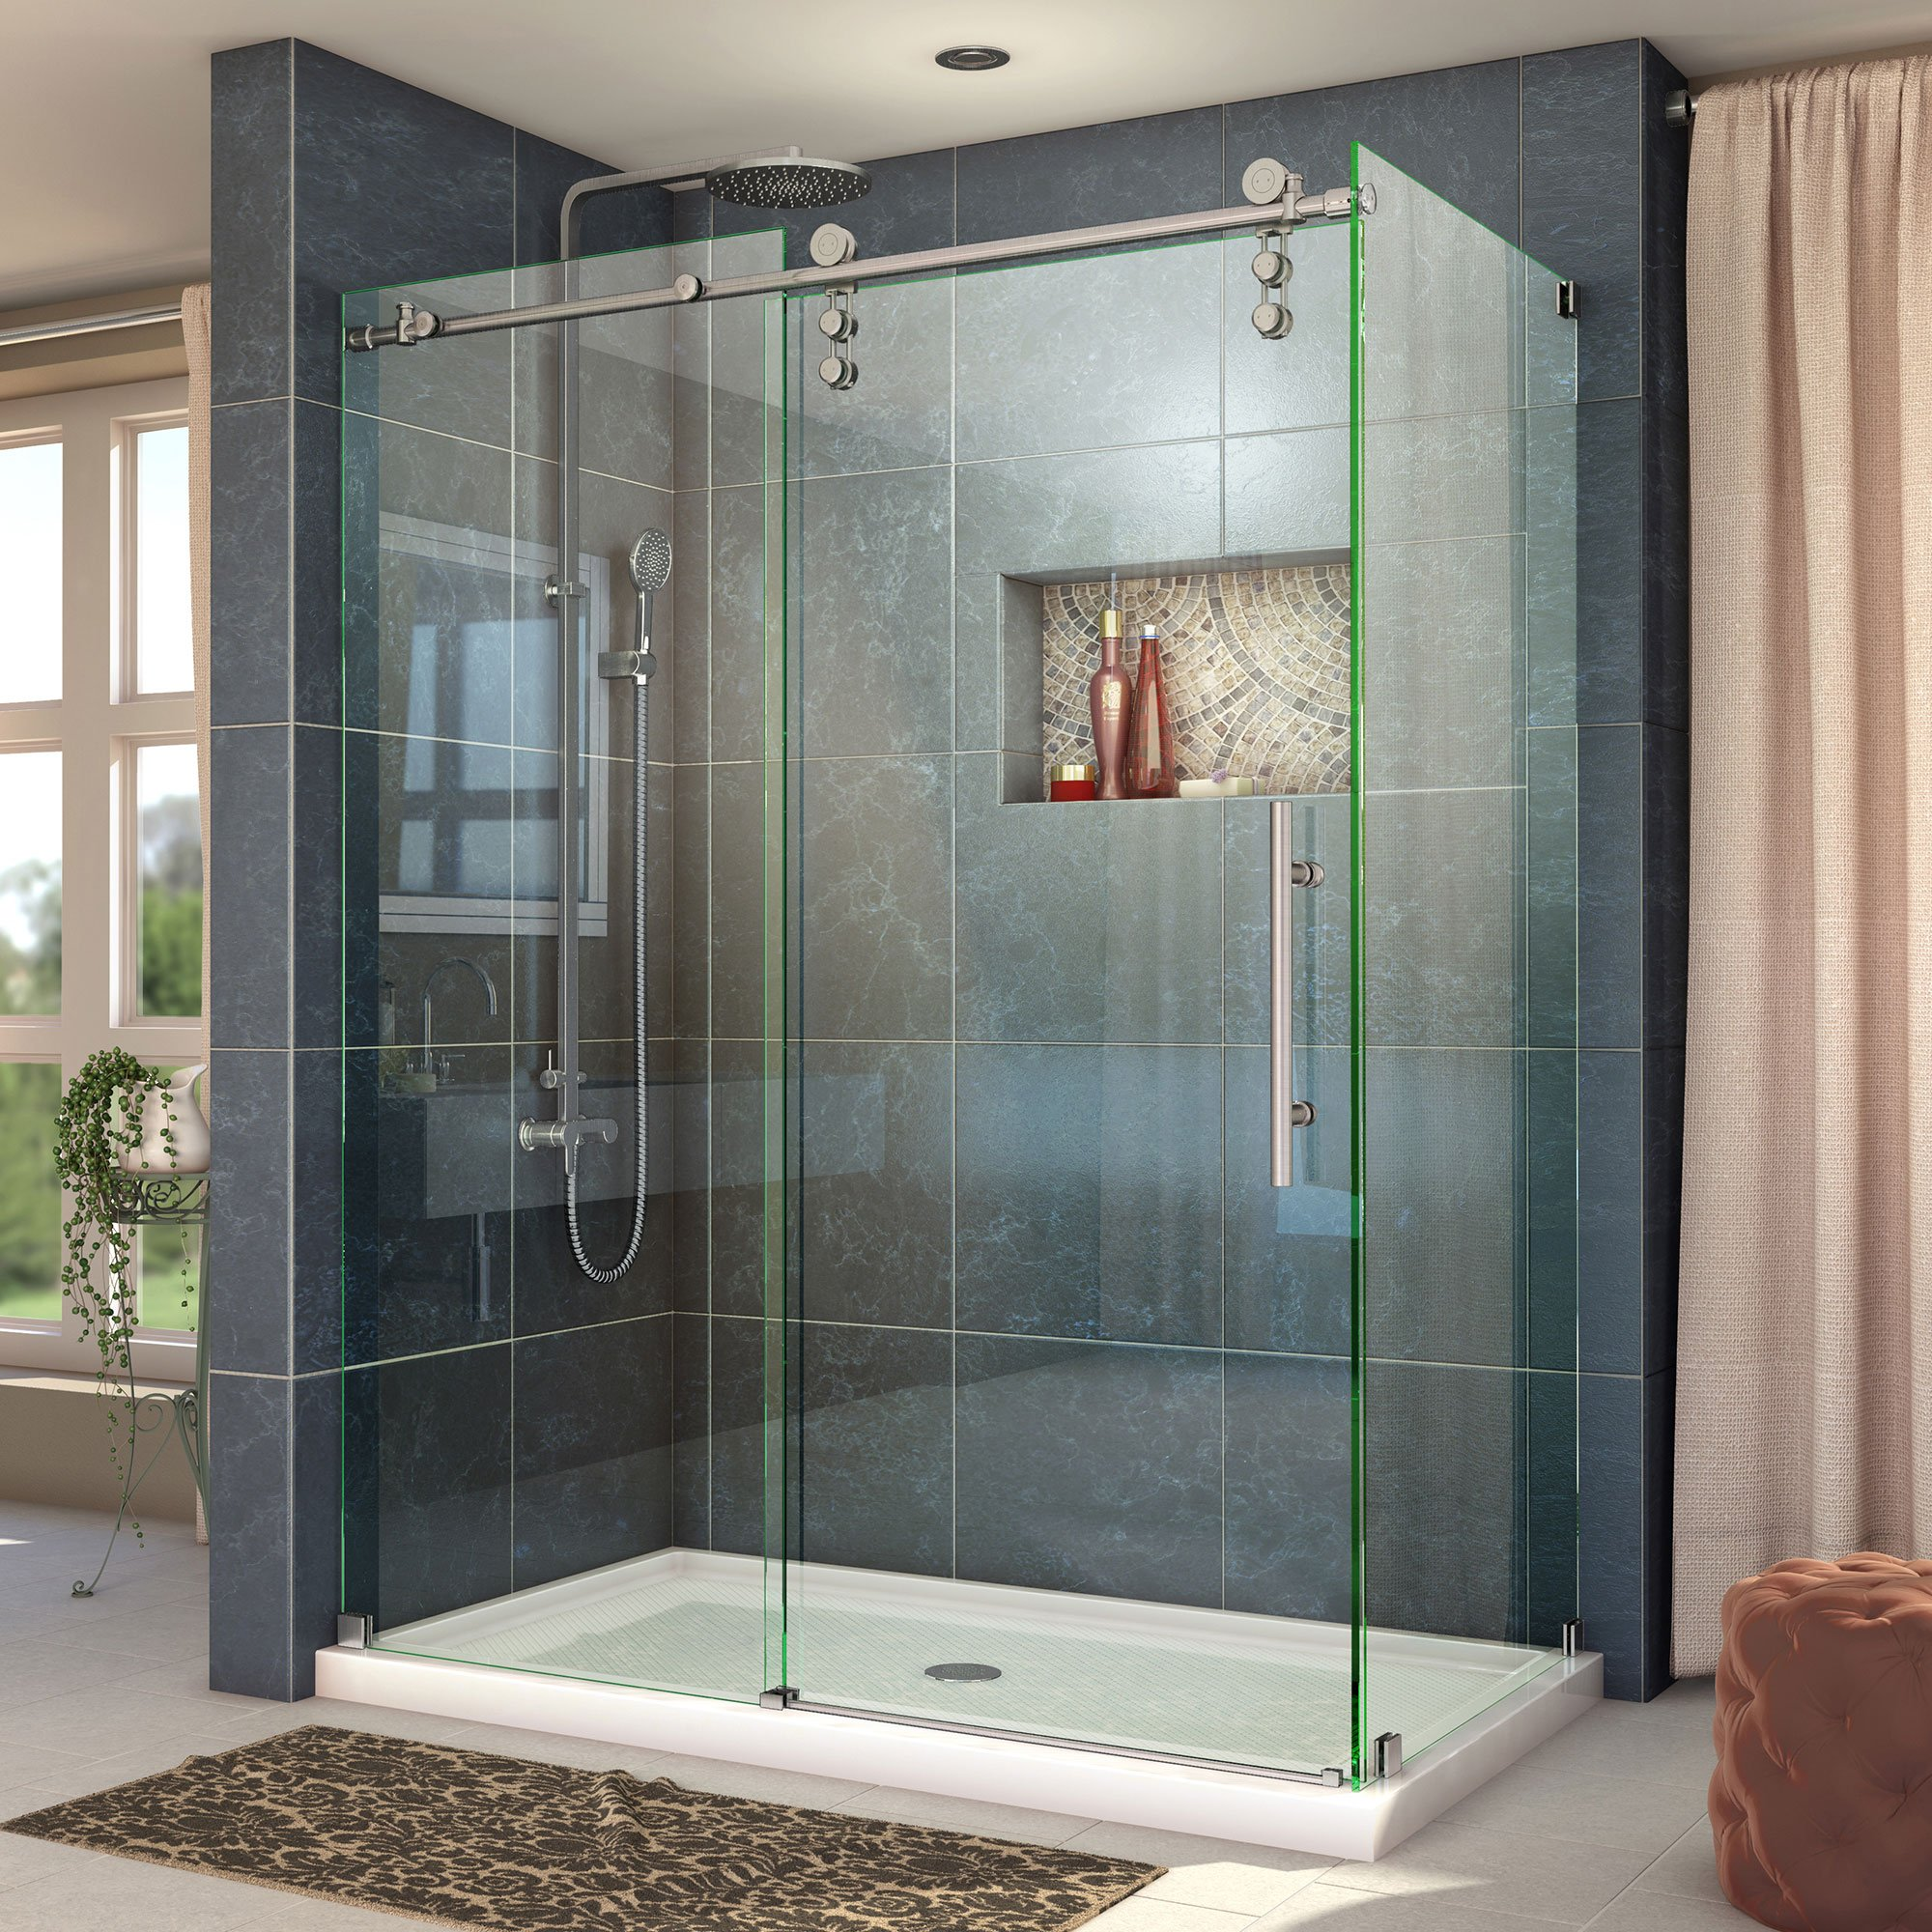 DreamLine Enigma-Z 34 1/2 in. D x 44 3/8-48 3/8 in. W, Frameless Sliding Shower Enclosure, 3/8'' Glass, Brushed Stainless Steel Finish